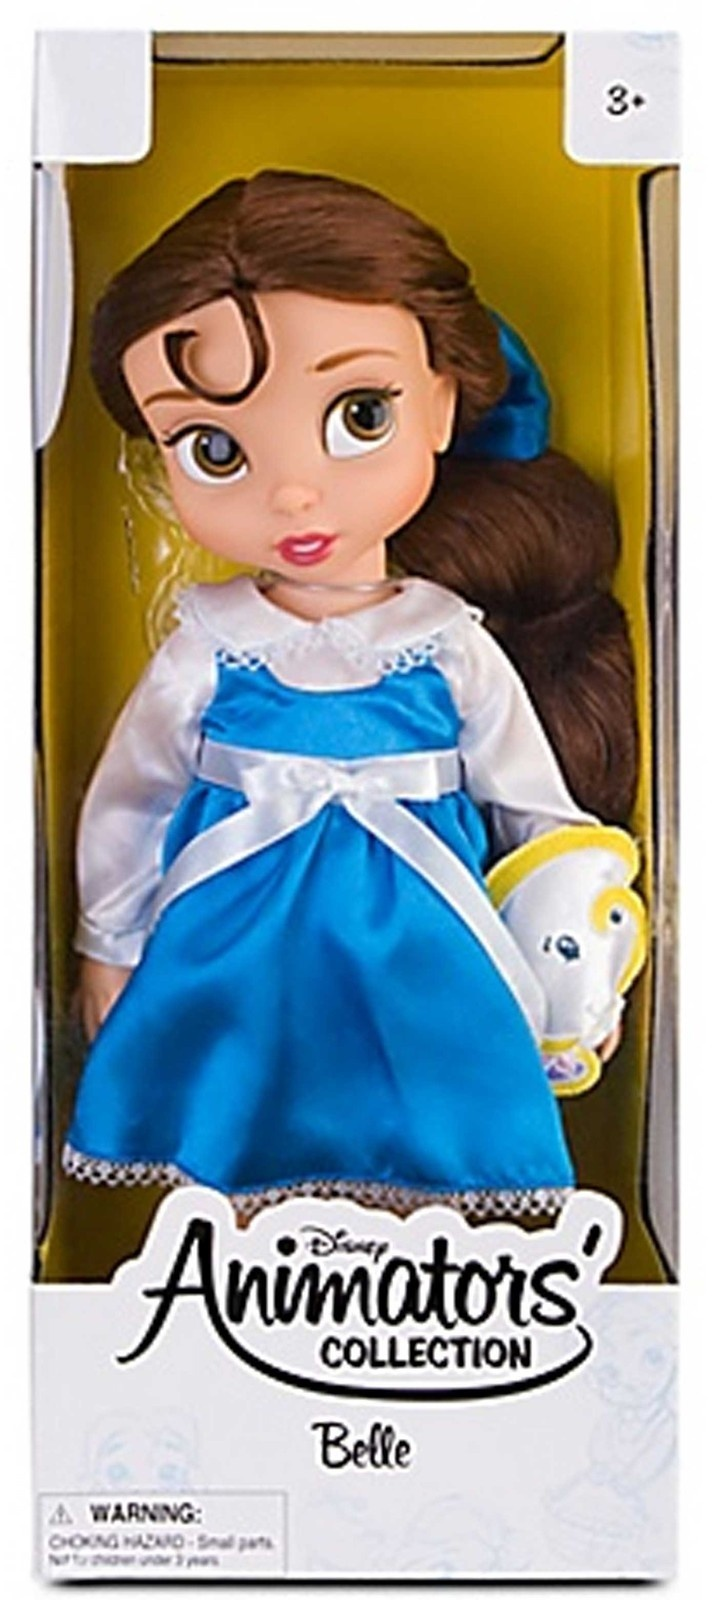 Jessica rabbit special edition doll by disney collectors dolls dark - Disney Designer Princess Beauty Belle Animator S Collection Doll Toddler Doll